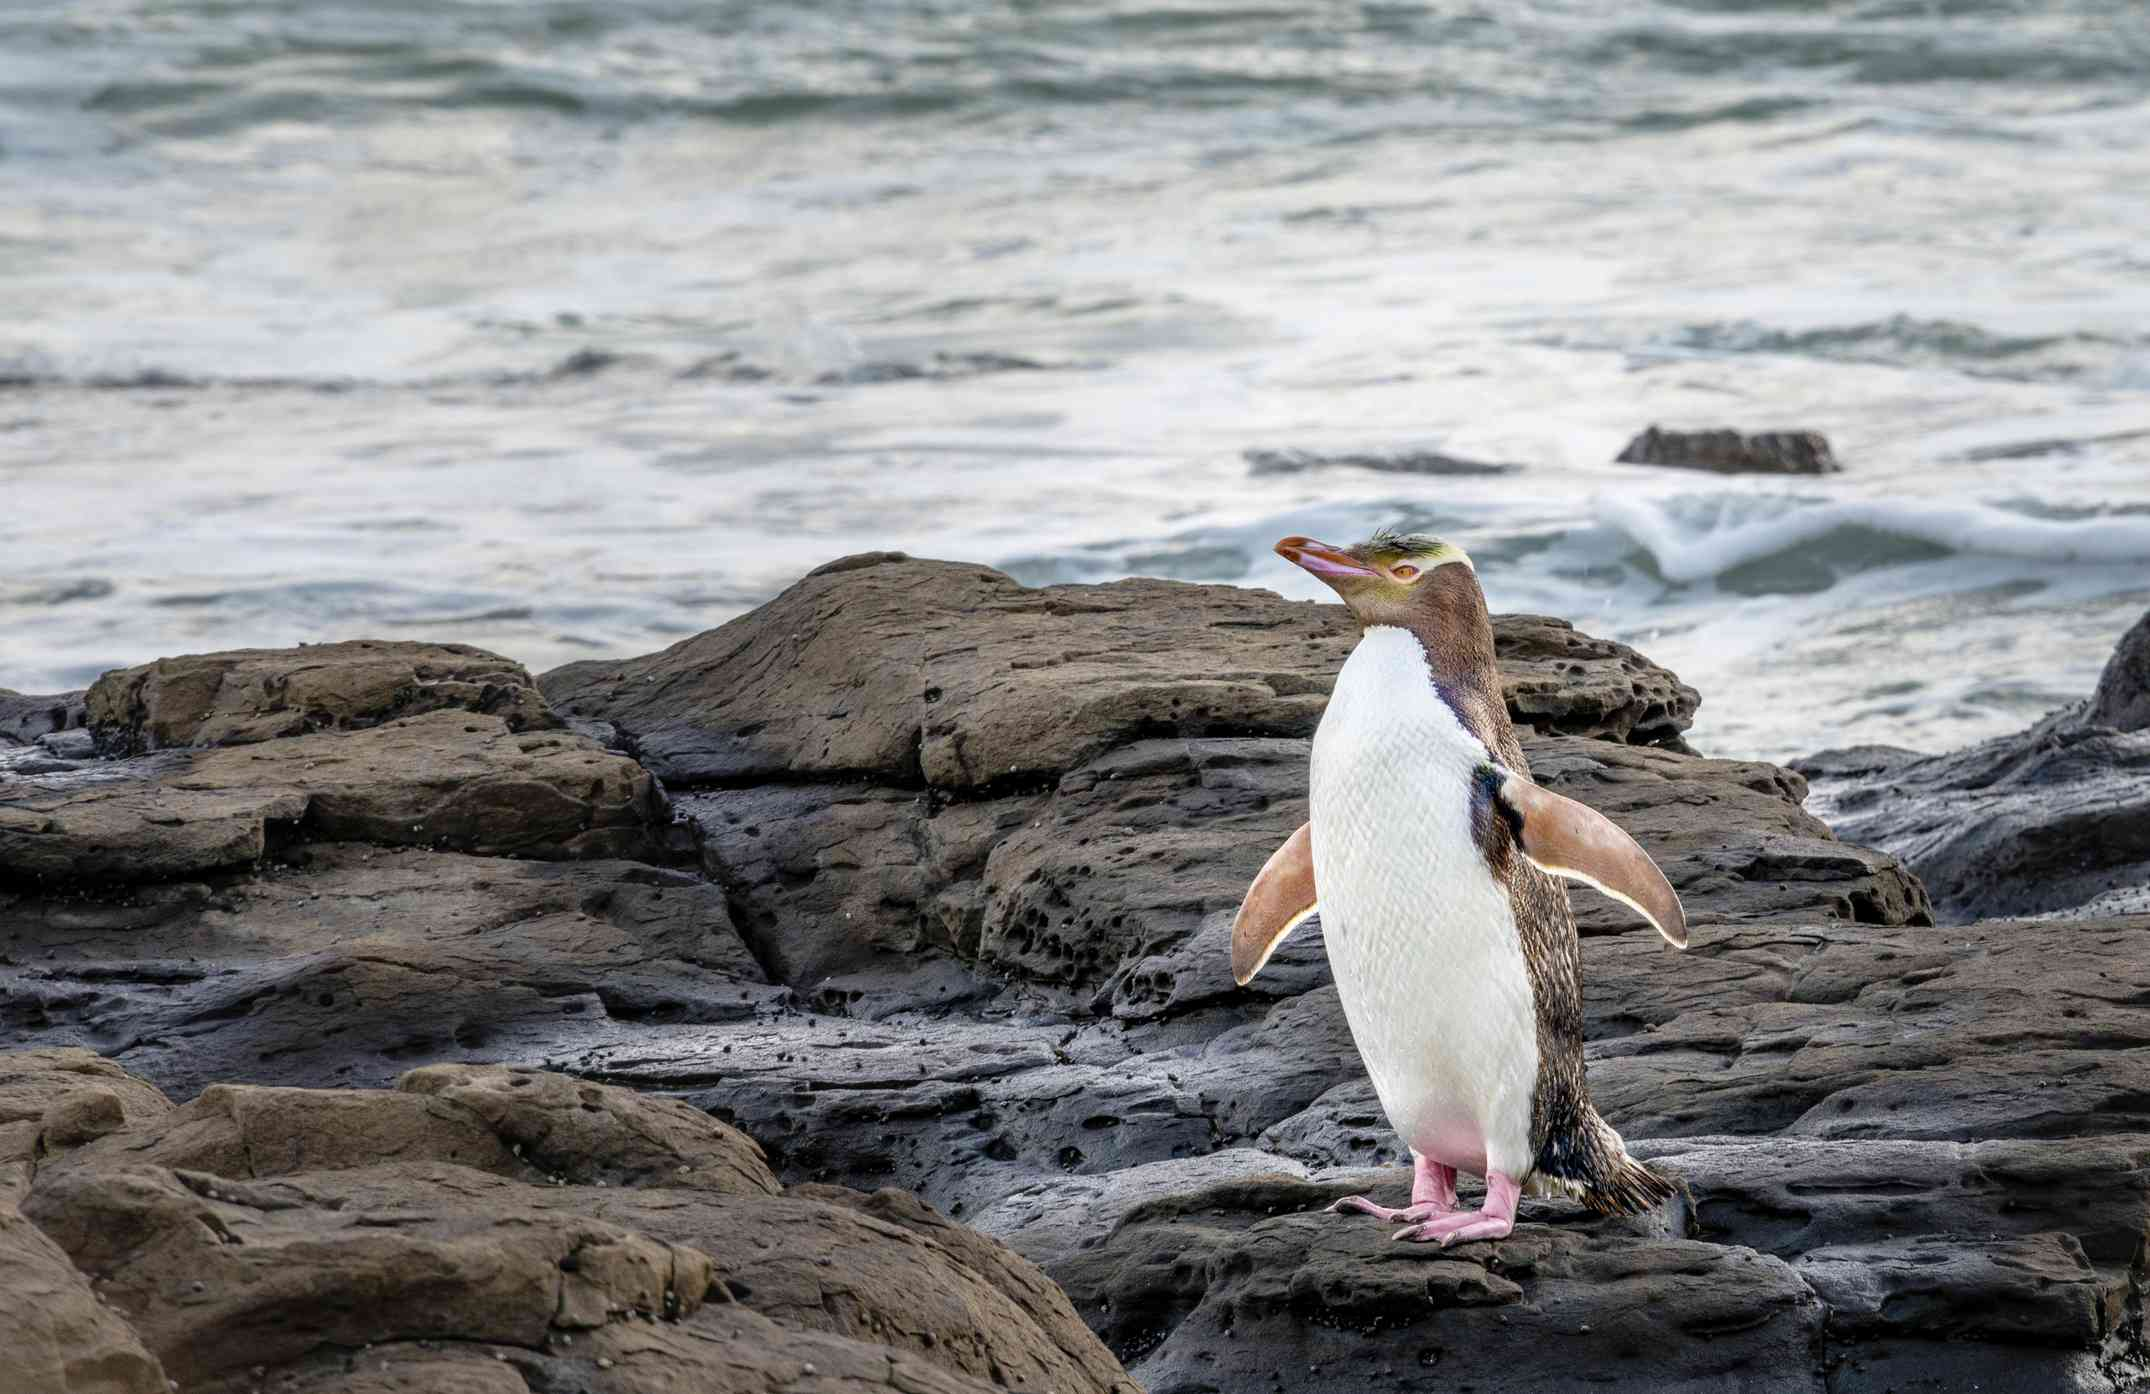 penguin standing on rocks with sea behind